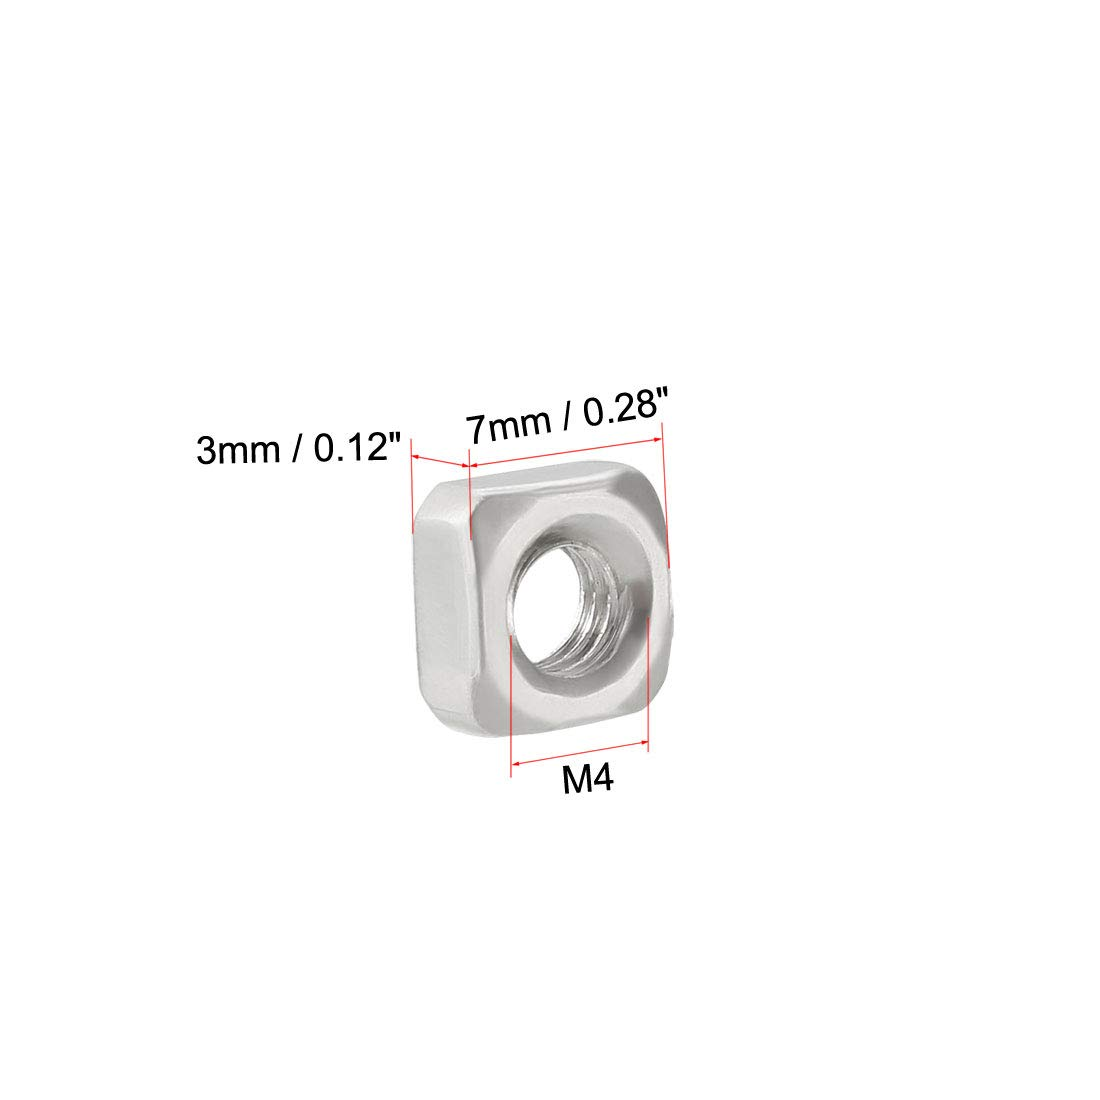 Bright Finish Uncoated M6-1.00 Thread Size Union Butterfield 1700 M Round Shank with Square End Bottoming Chamfer High-Speed Steel Hand Tap